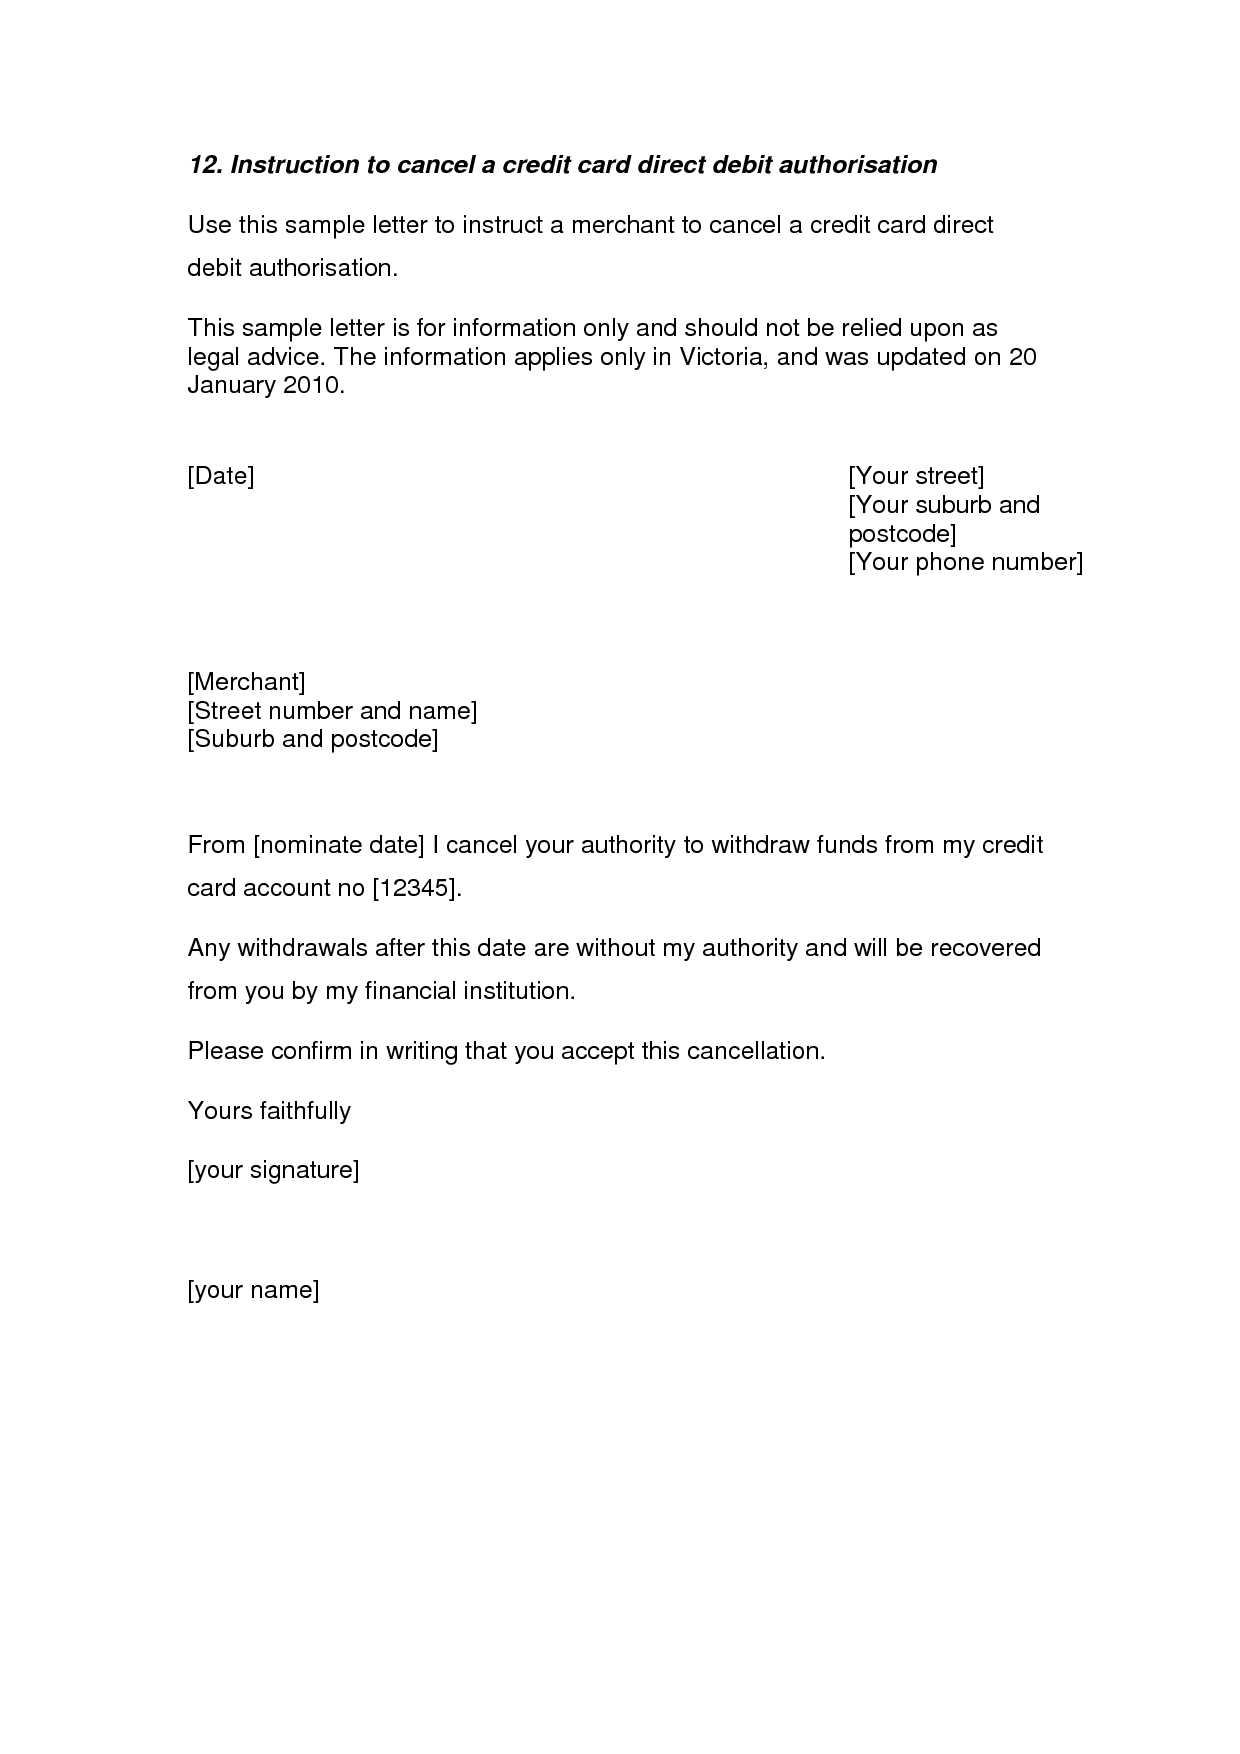 Insurance Cancellation Letter Template - Credit Card Cancellation Letter A Credit Card Cancellation Letter